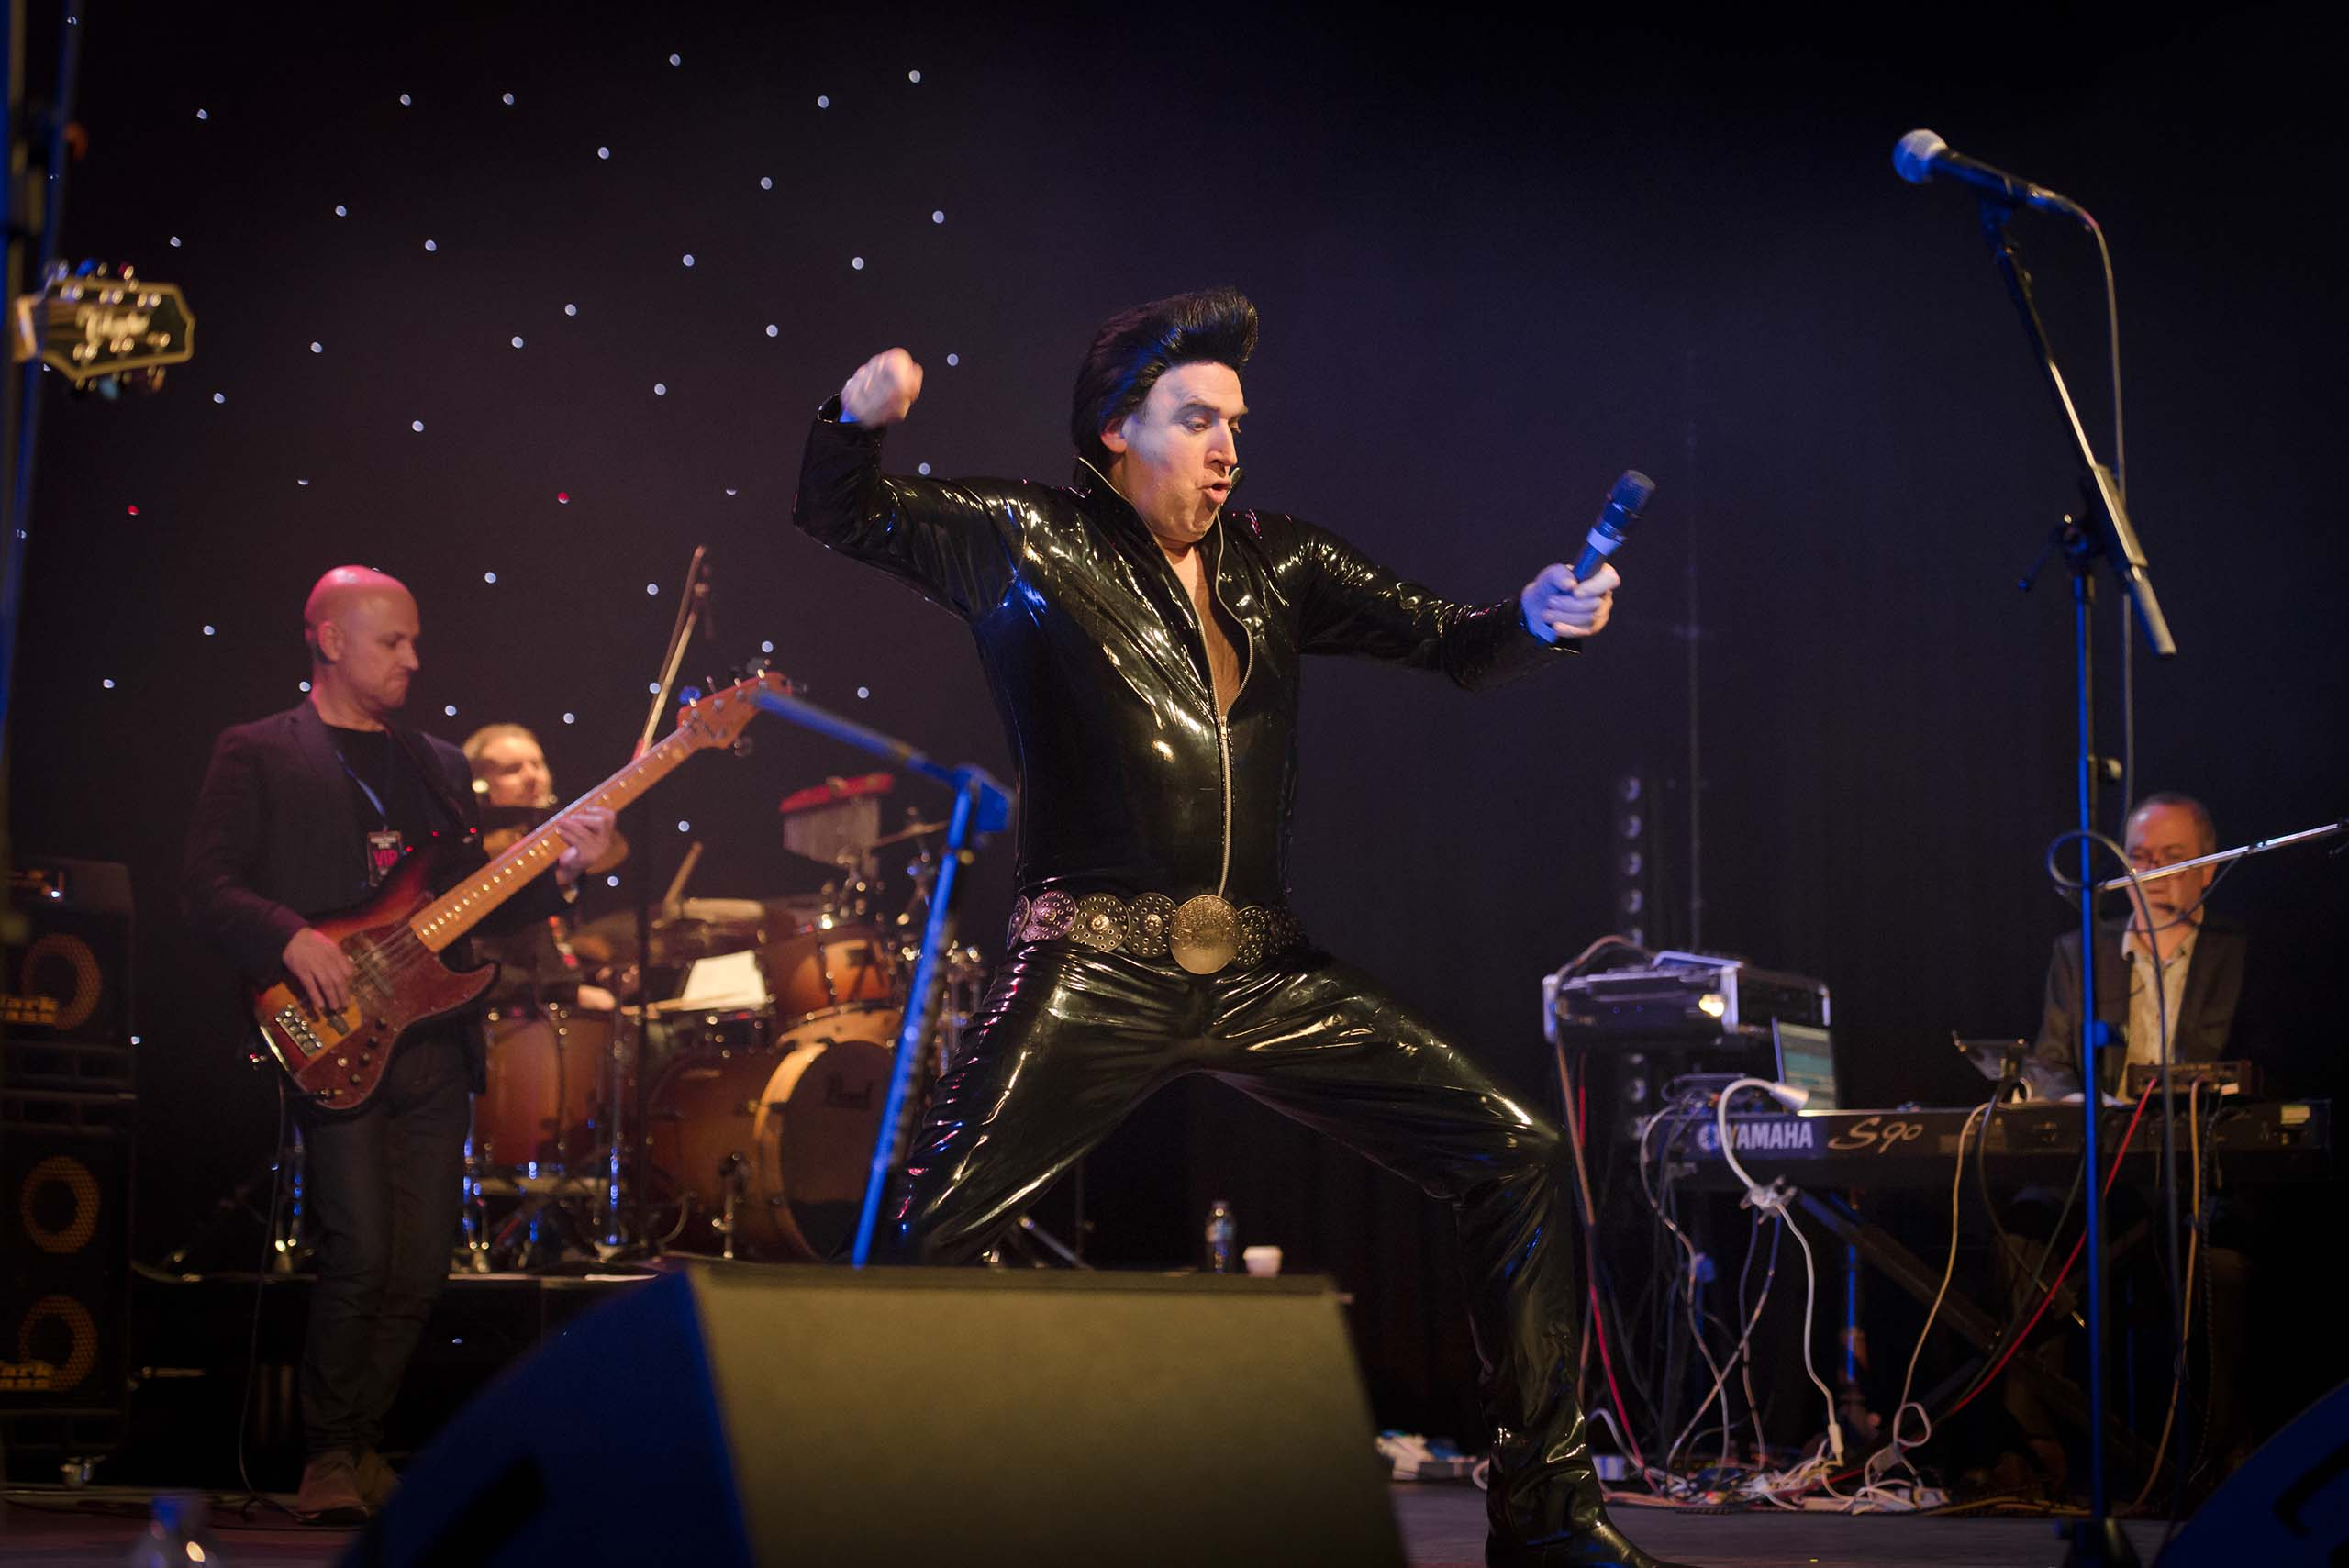 Tim Vine playing Plastic Elvis at Indigofest